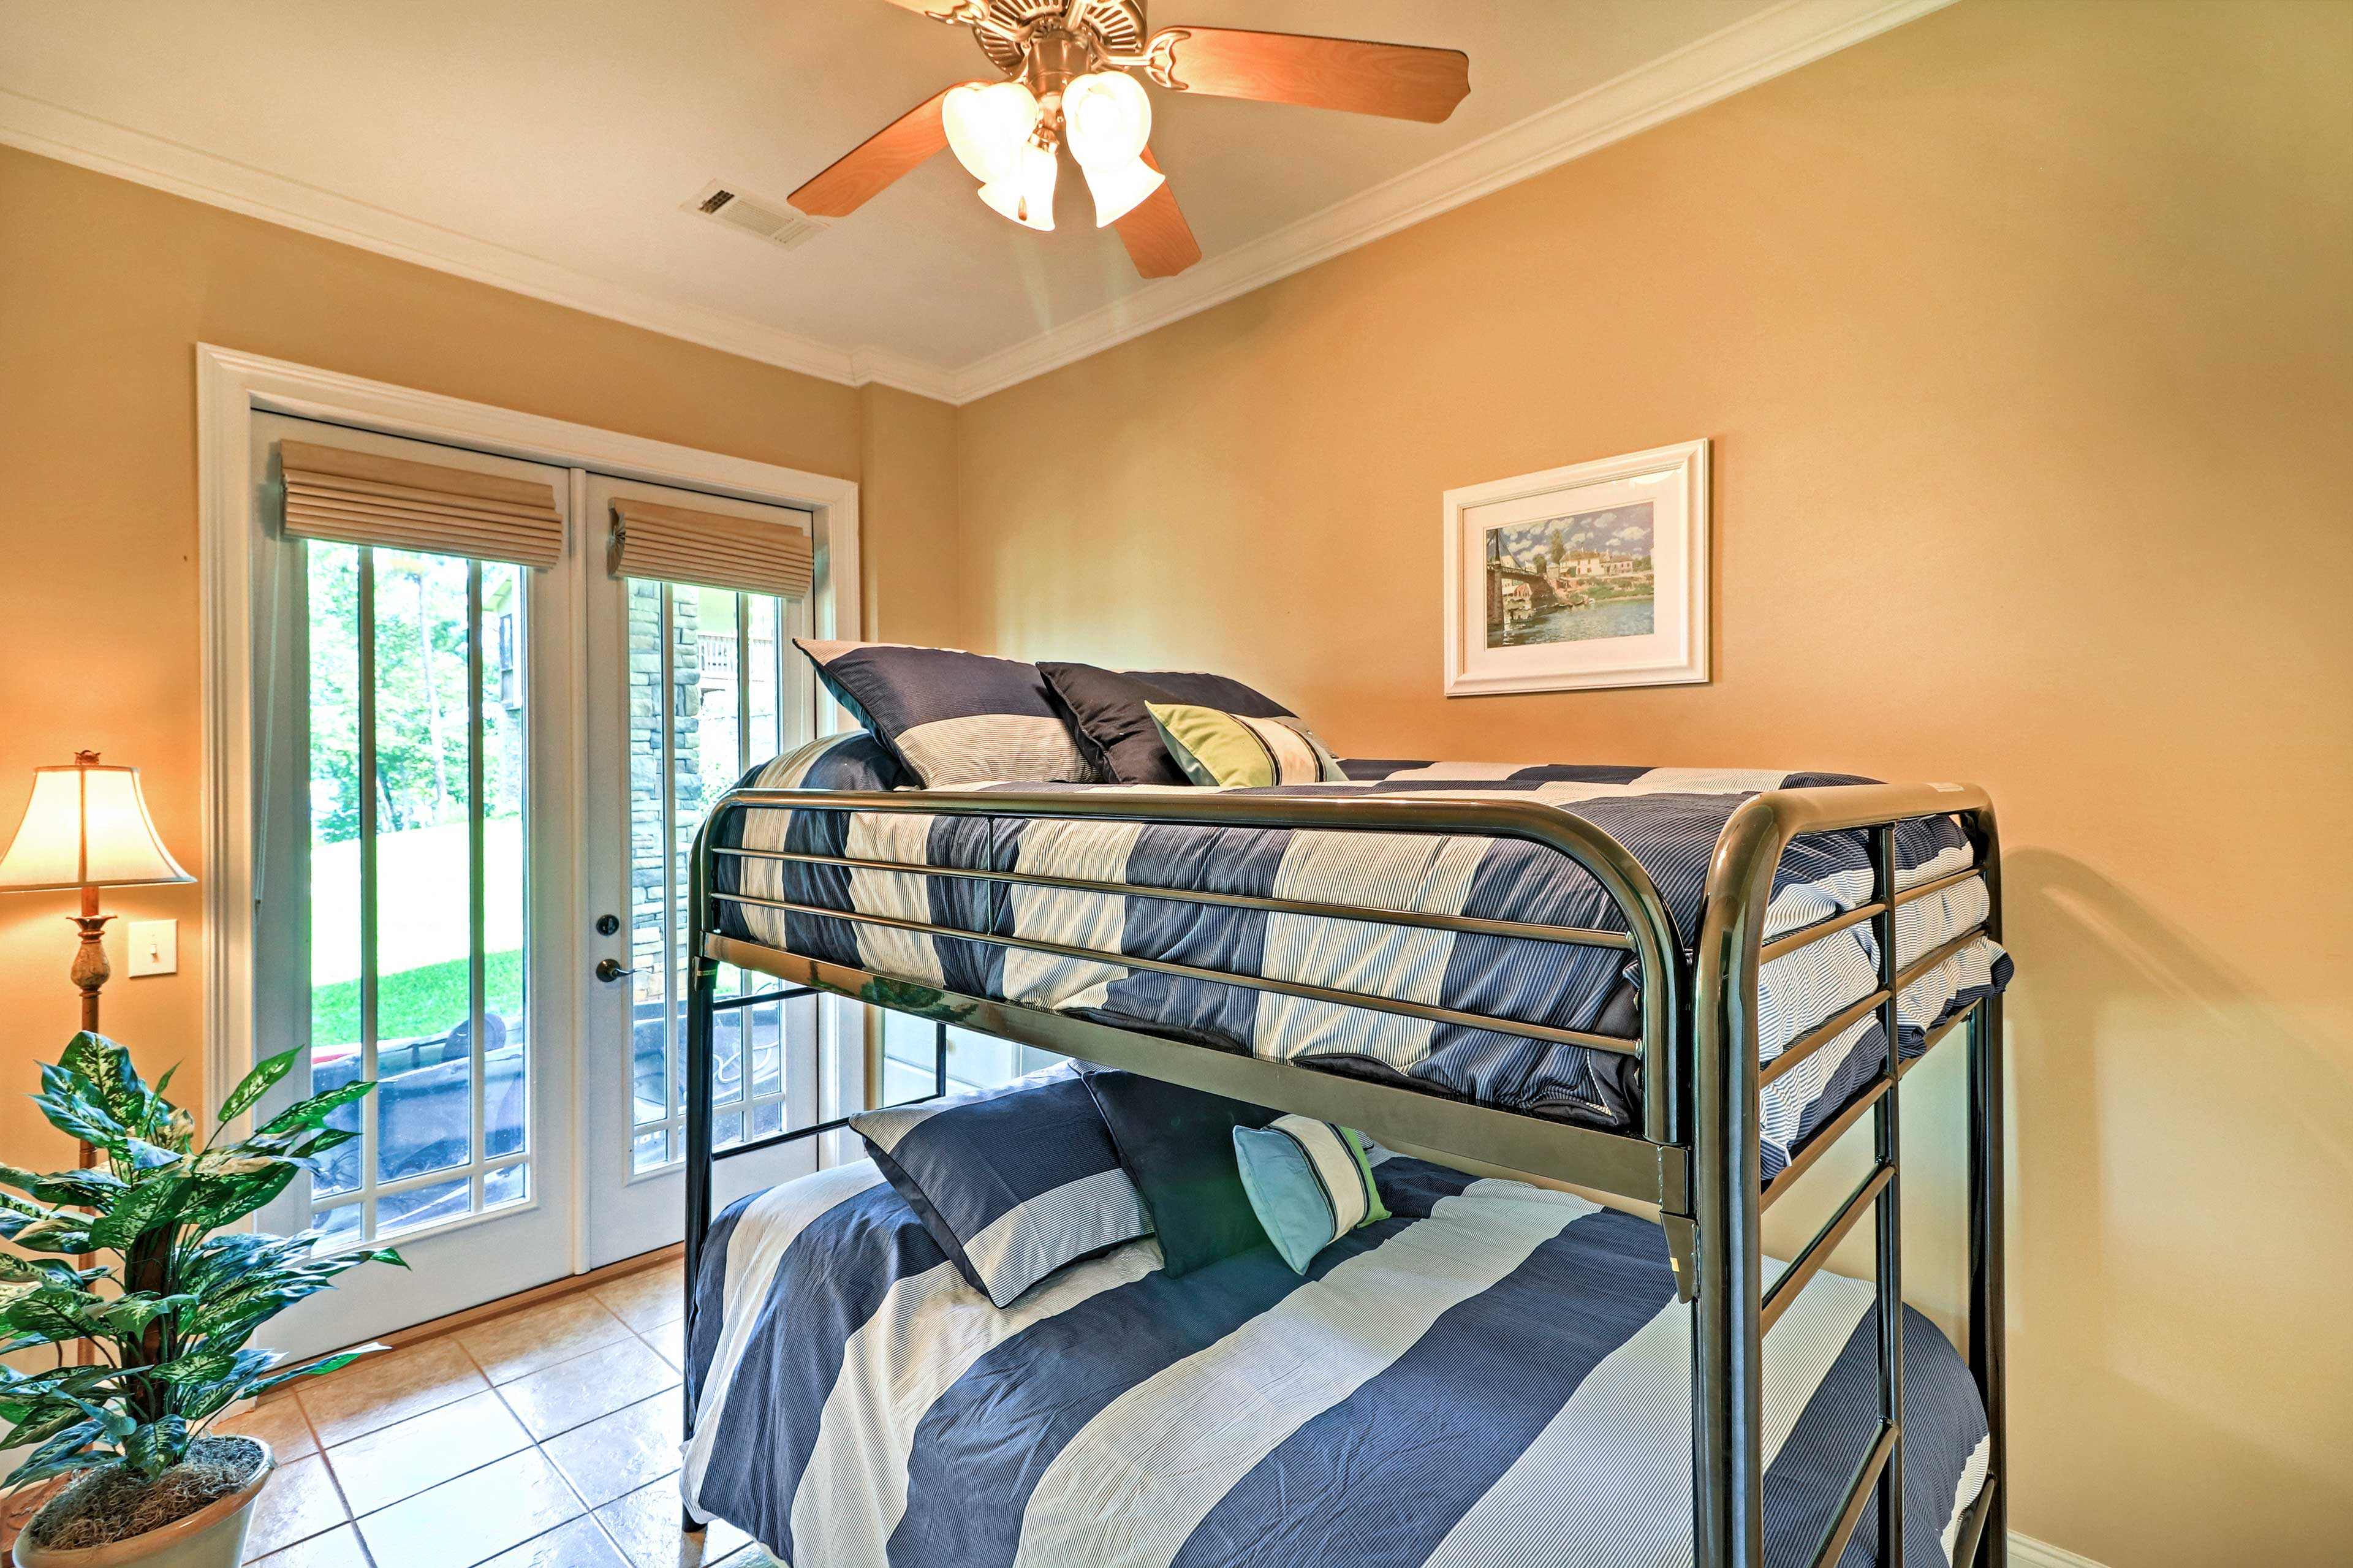 Kids will love staying in this room with full bunk beds.